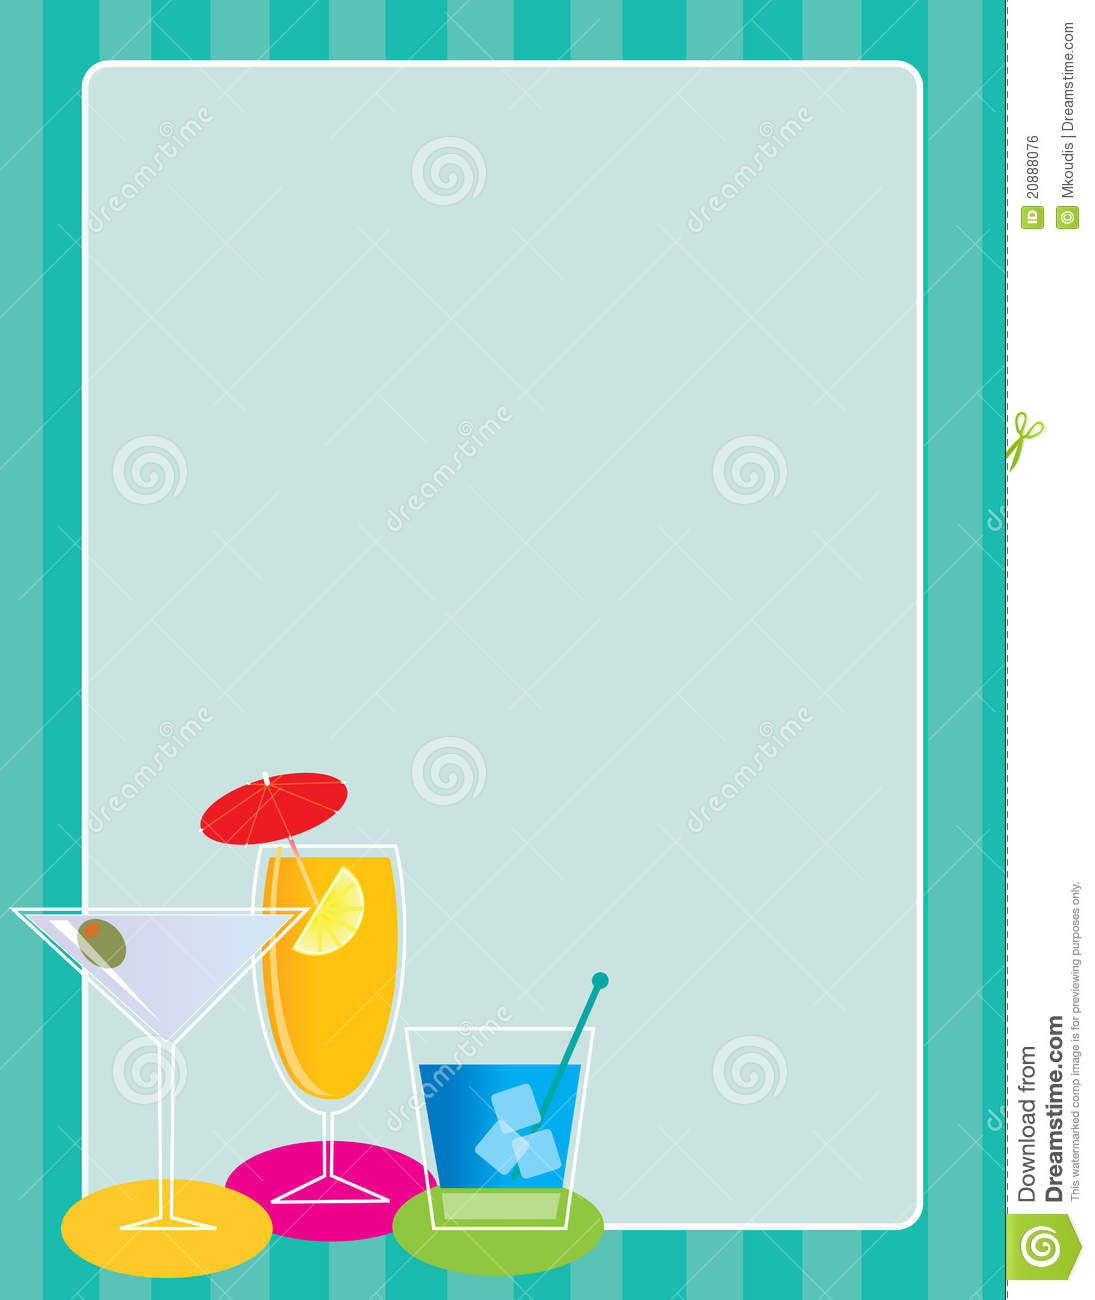 cocktail border stock vector illustration of olive  cube swimming pool clipart wallpaper swimming pool clip art free